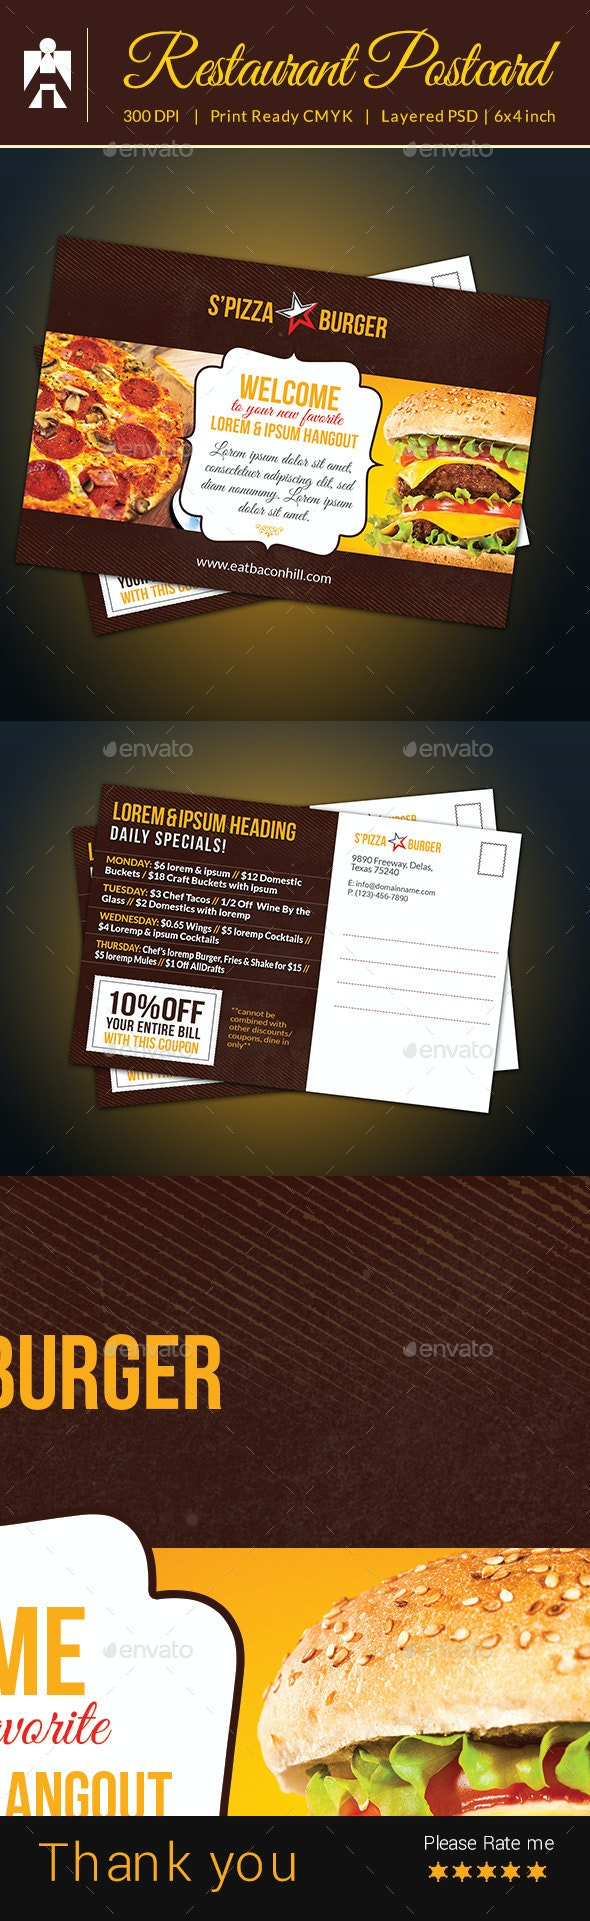 Restaurant Postcard With Coupon Code - Cards & Invites Print Templates